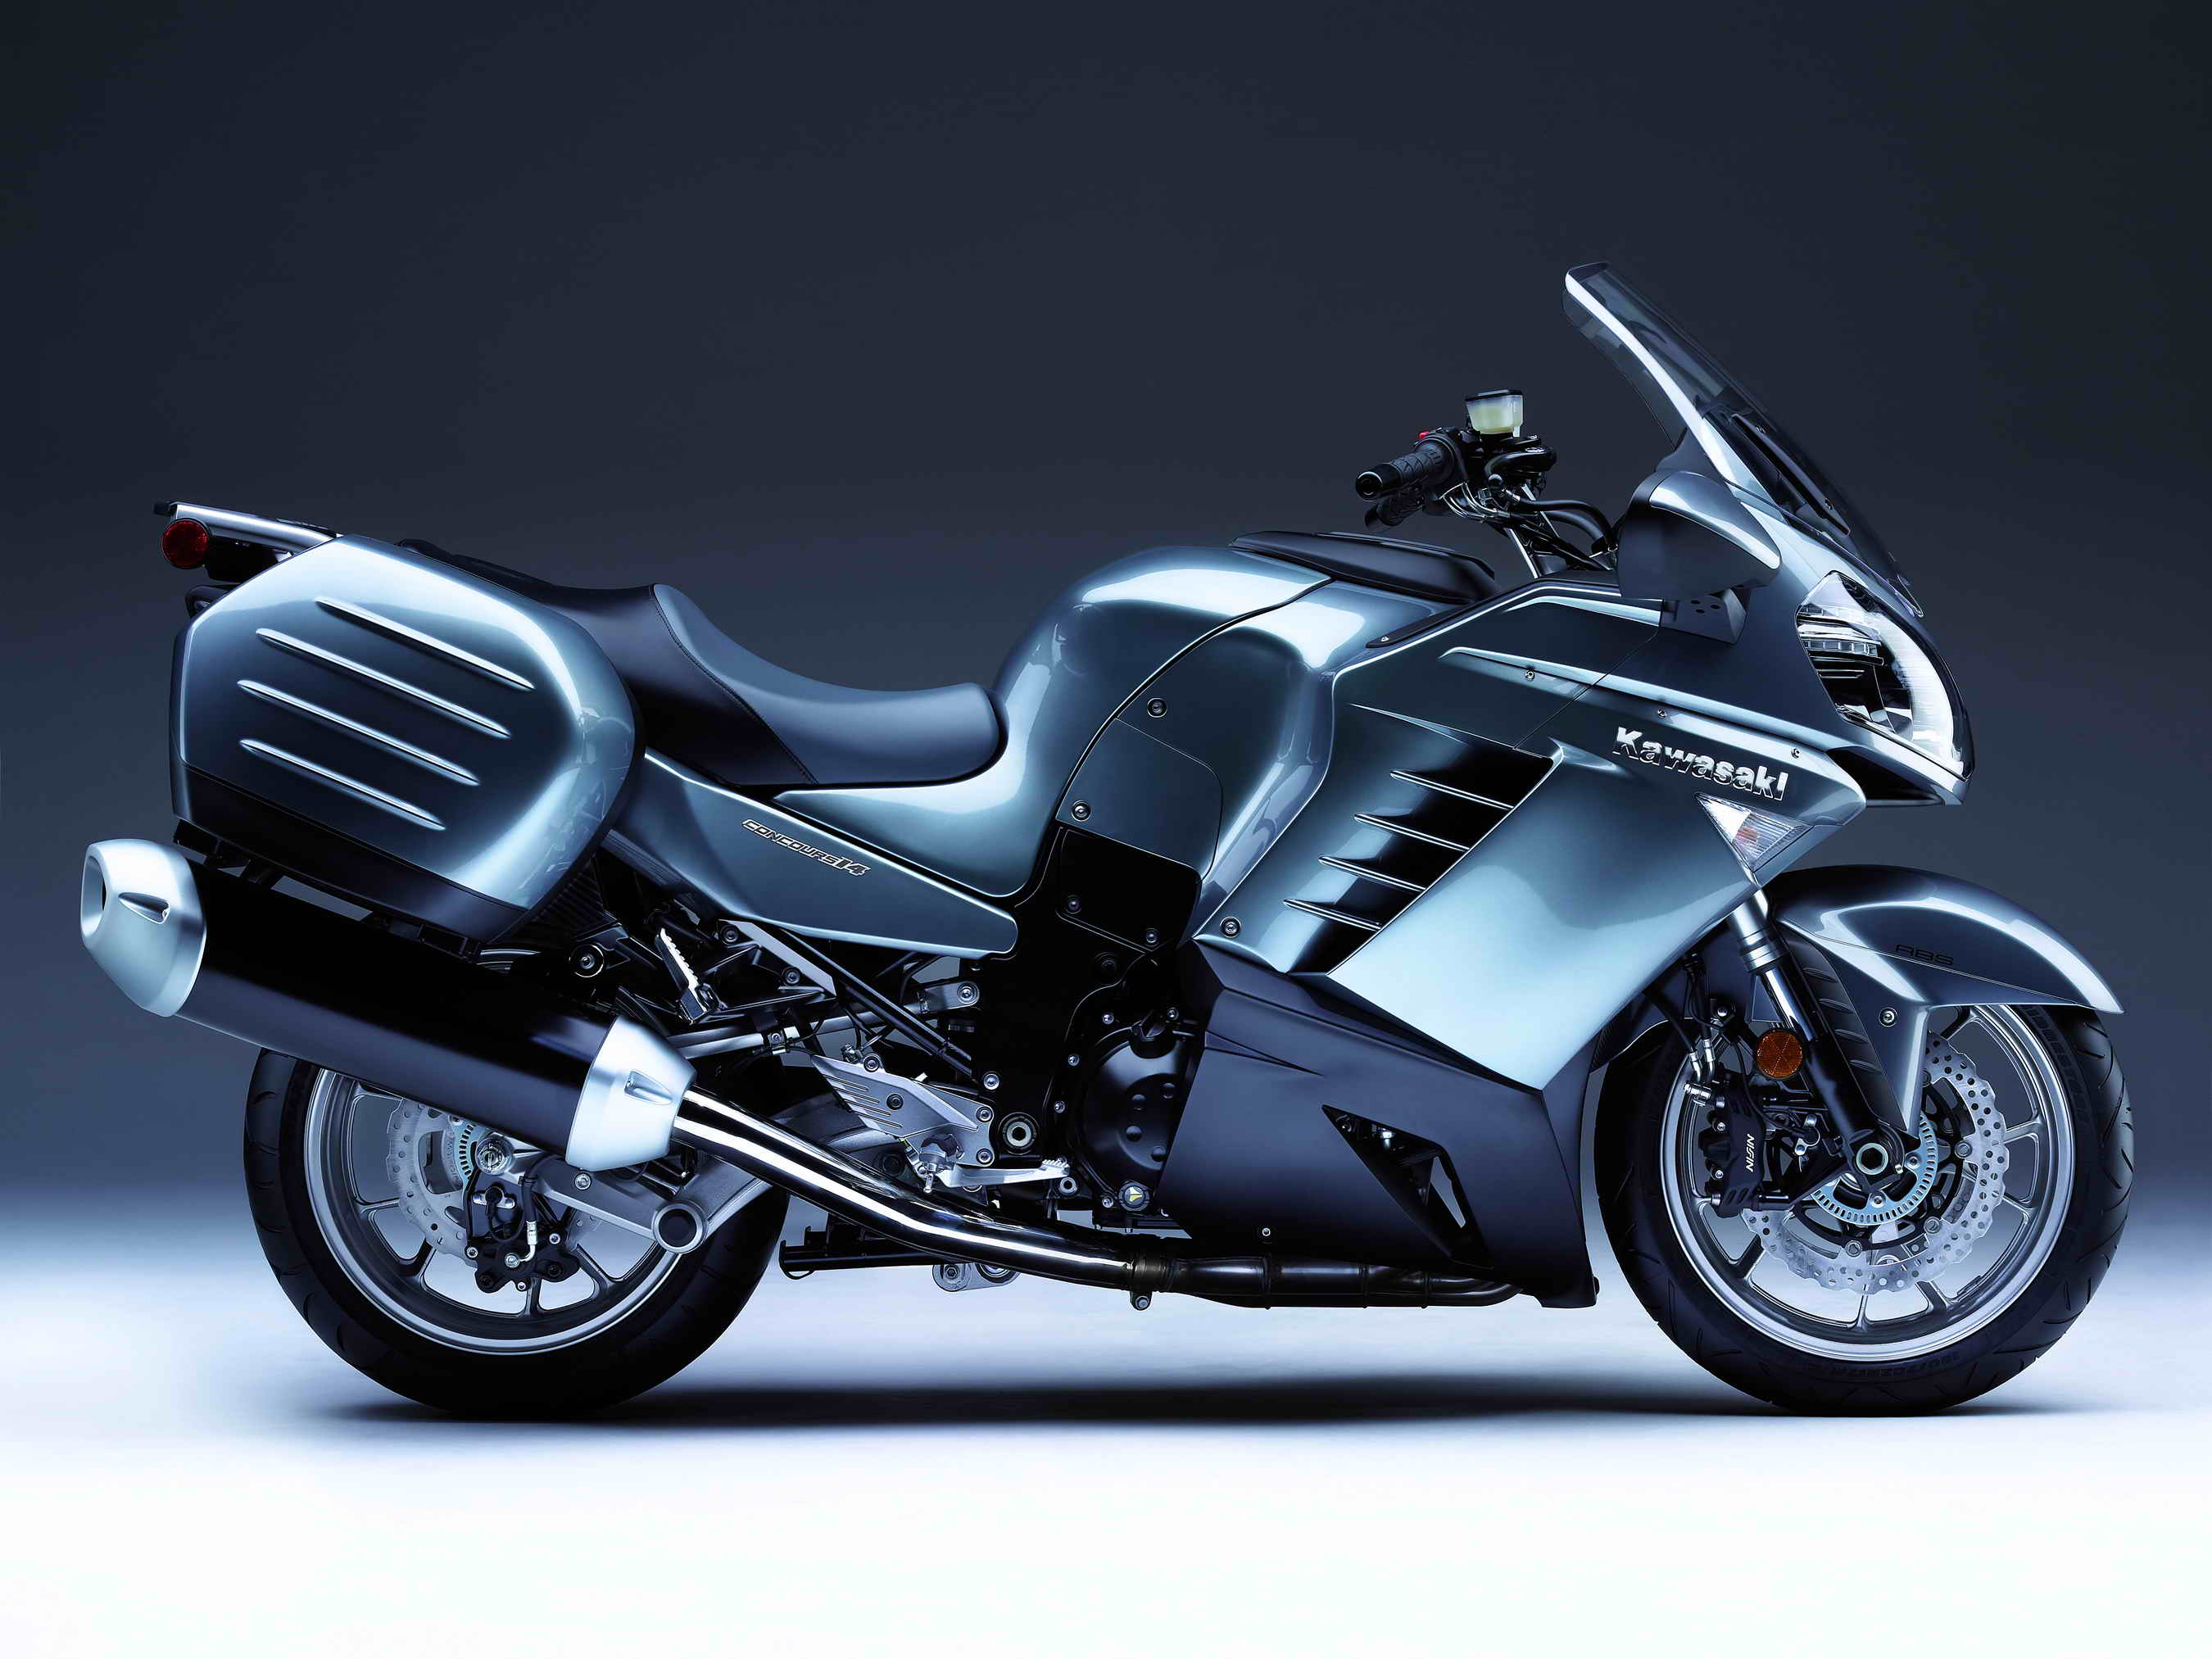 2015 Kawasaki Concours 14 Owners Manual Online User Wiring Diagram C14 Browse Guides U2022 Rh Trufflefries Co 2016